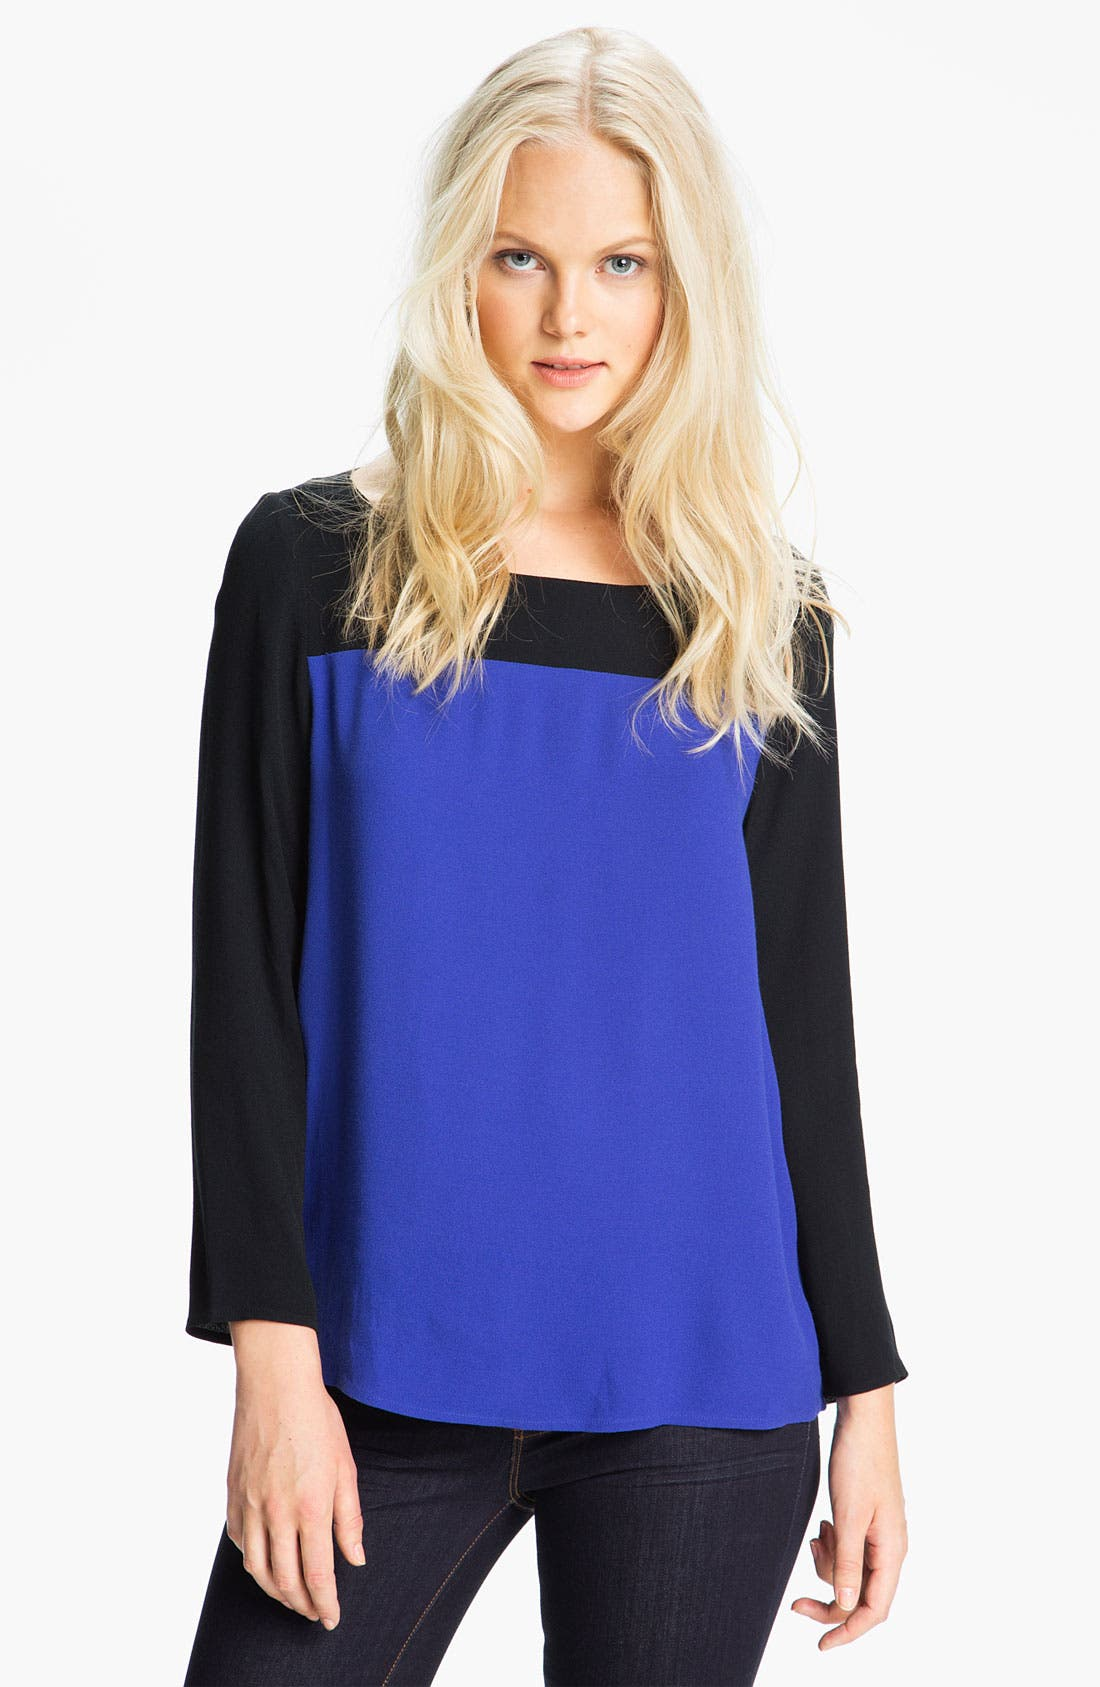 Alternate Image 1 Selected - Joie 'Aliso' Colorblock Top